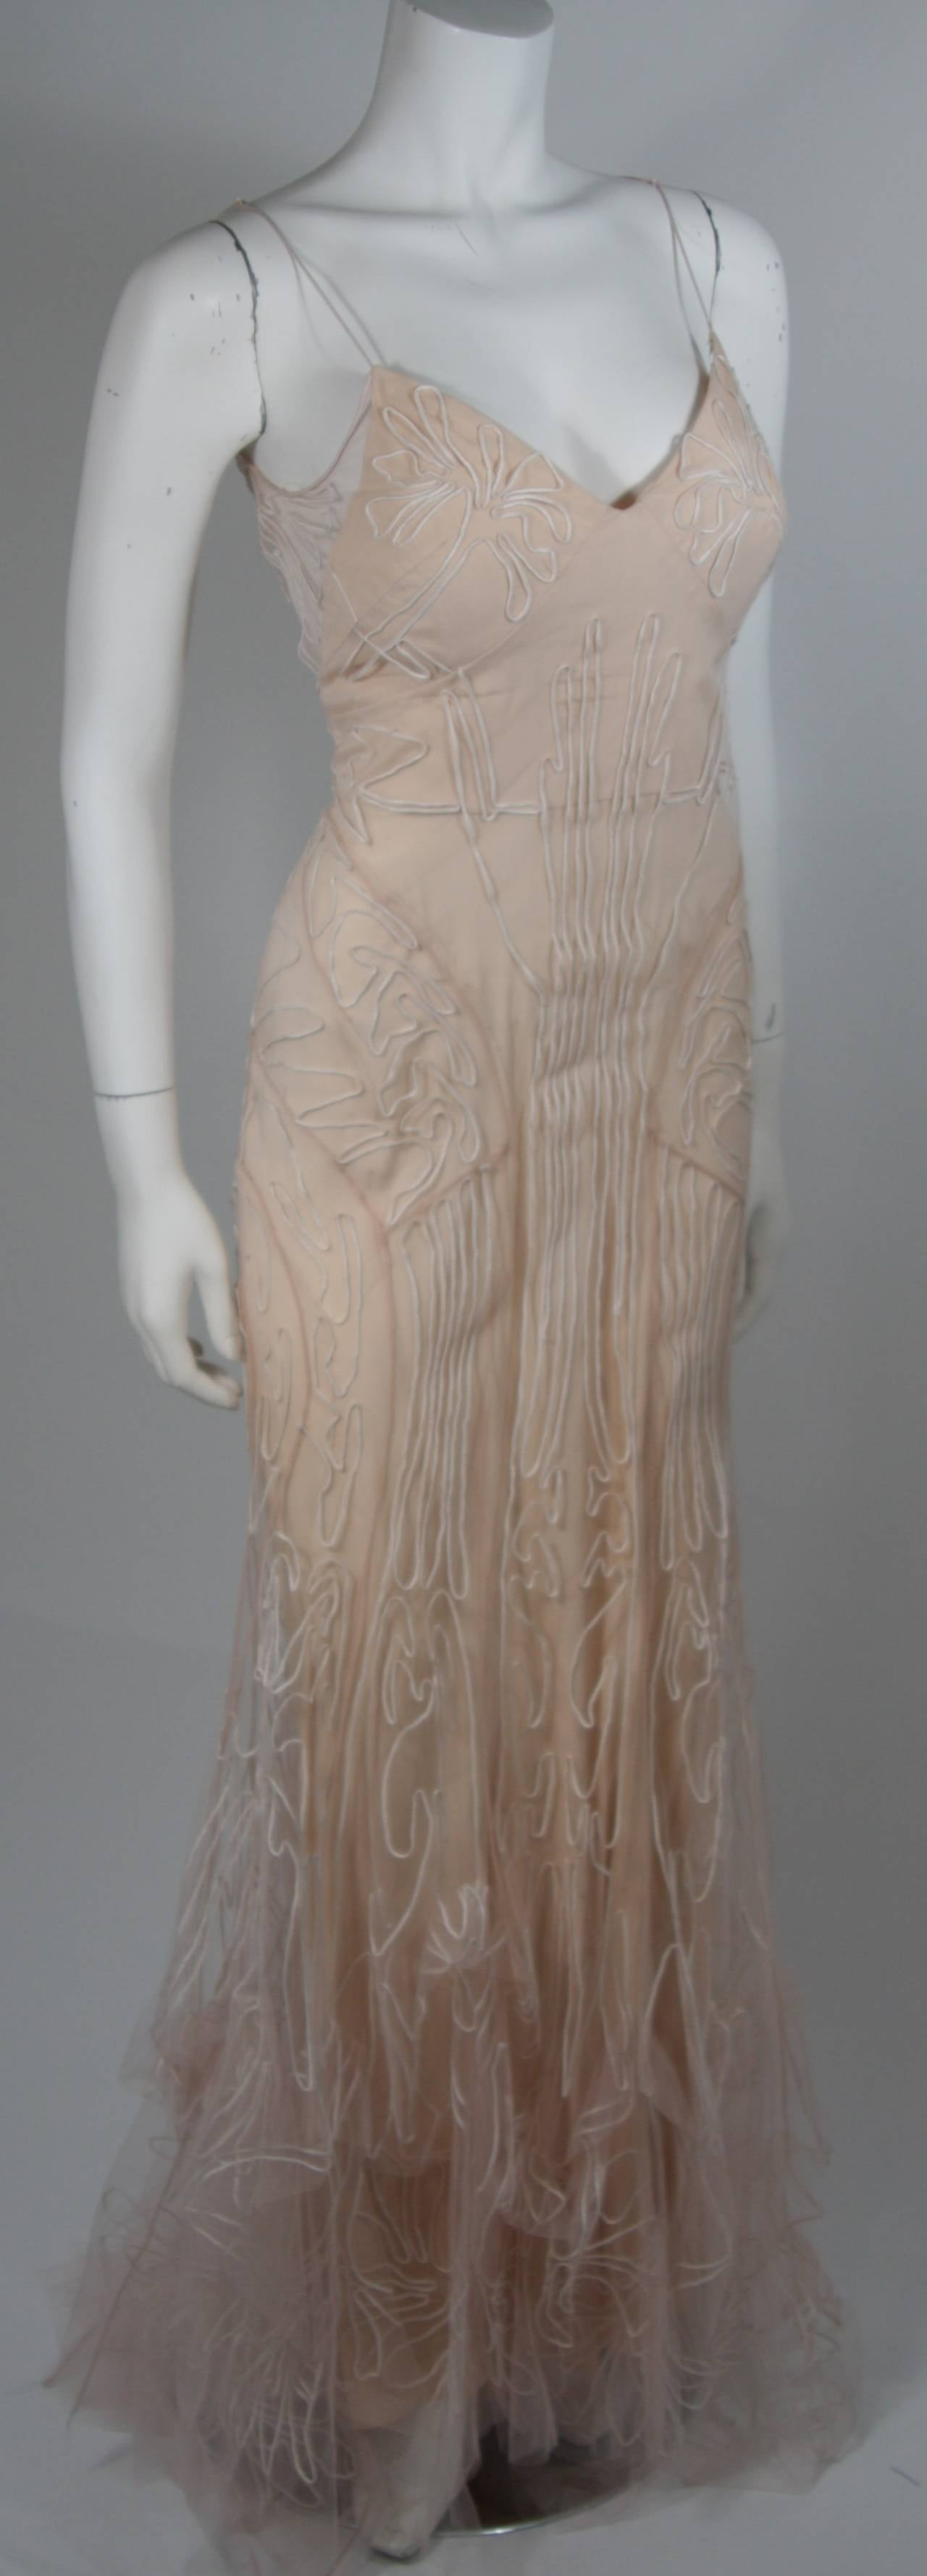 Zac Posen Embroidered Blush Silk Mesh Wedding Gown with Veil Size Small 5